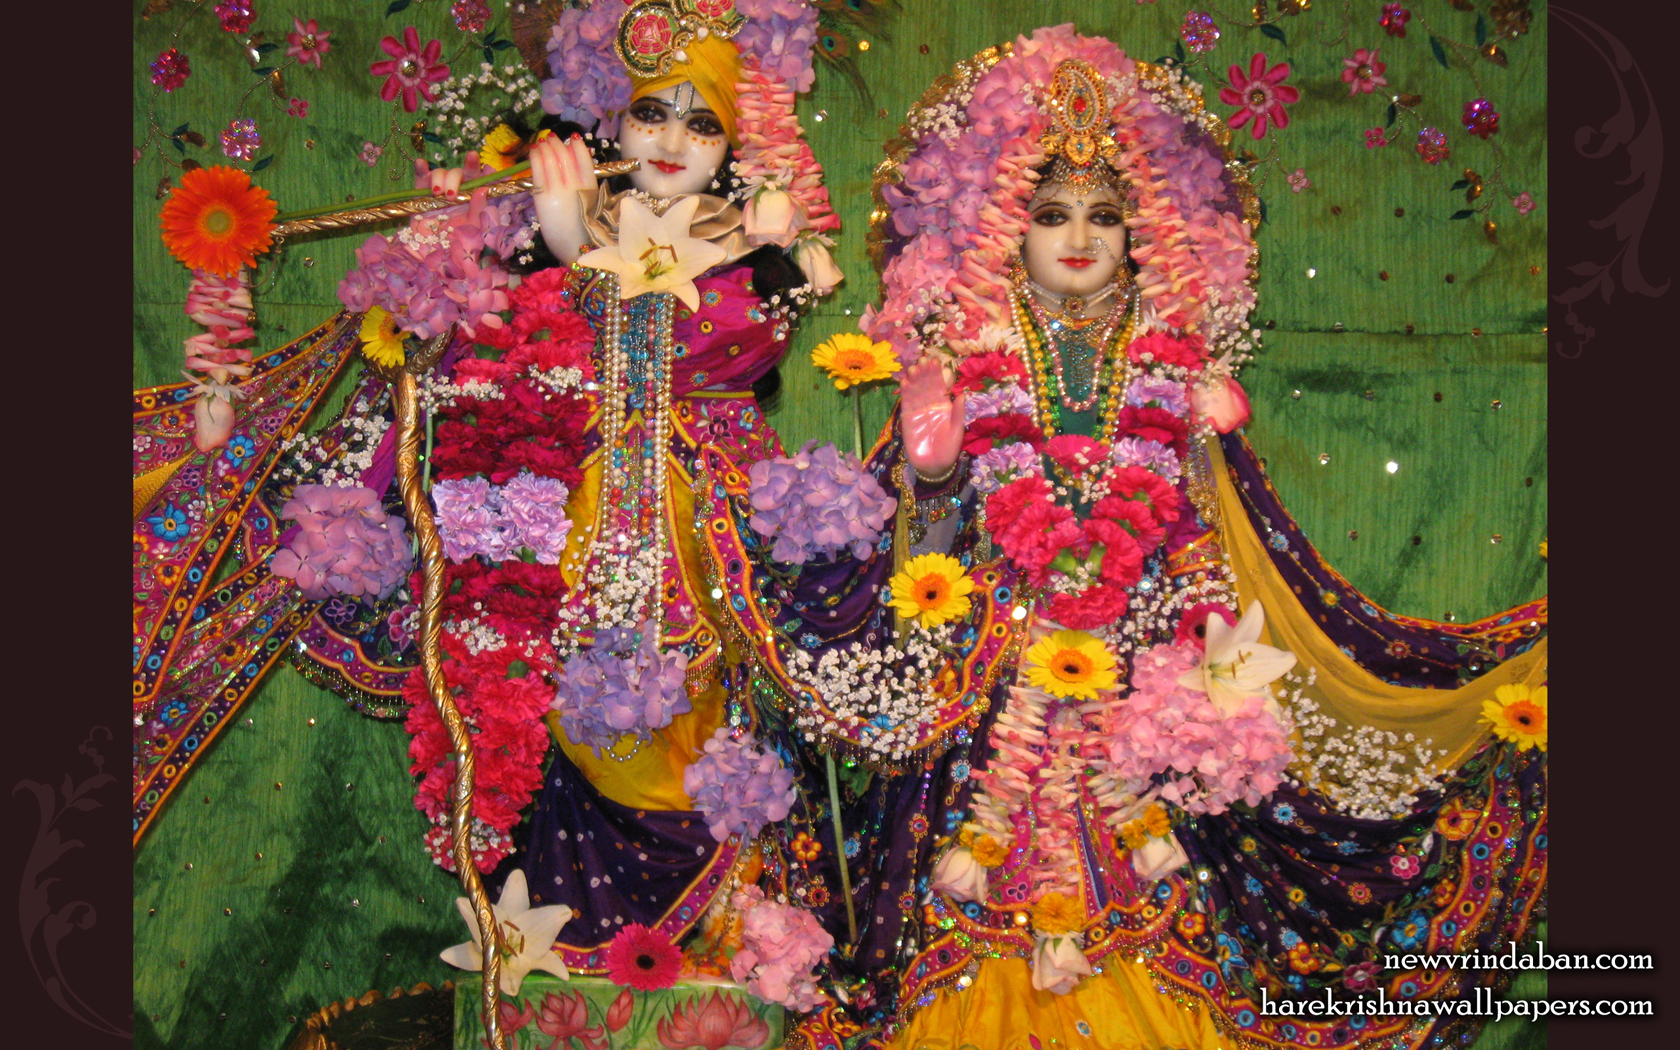 Sri Sri Radha Vrindavana Chandra Wallpaper (004) Size 1680x1050 Download